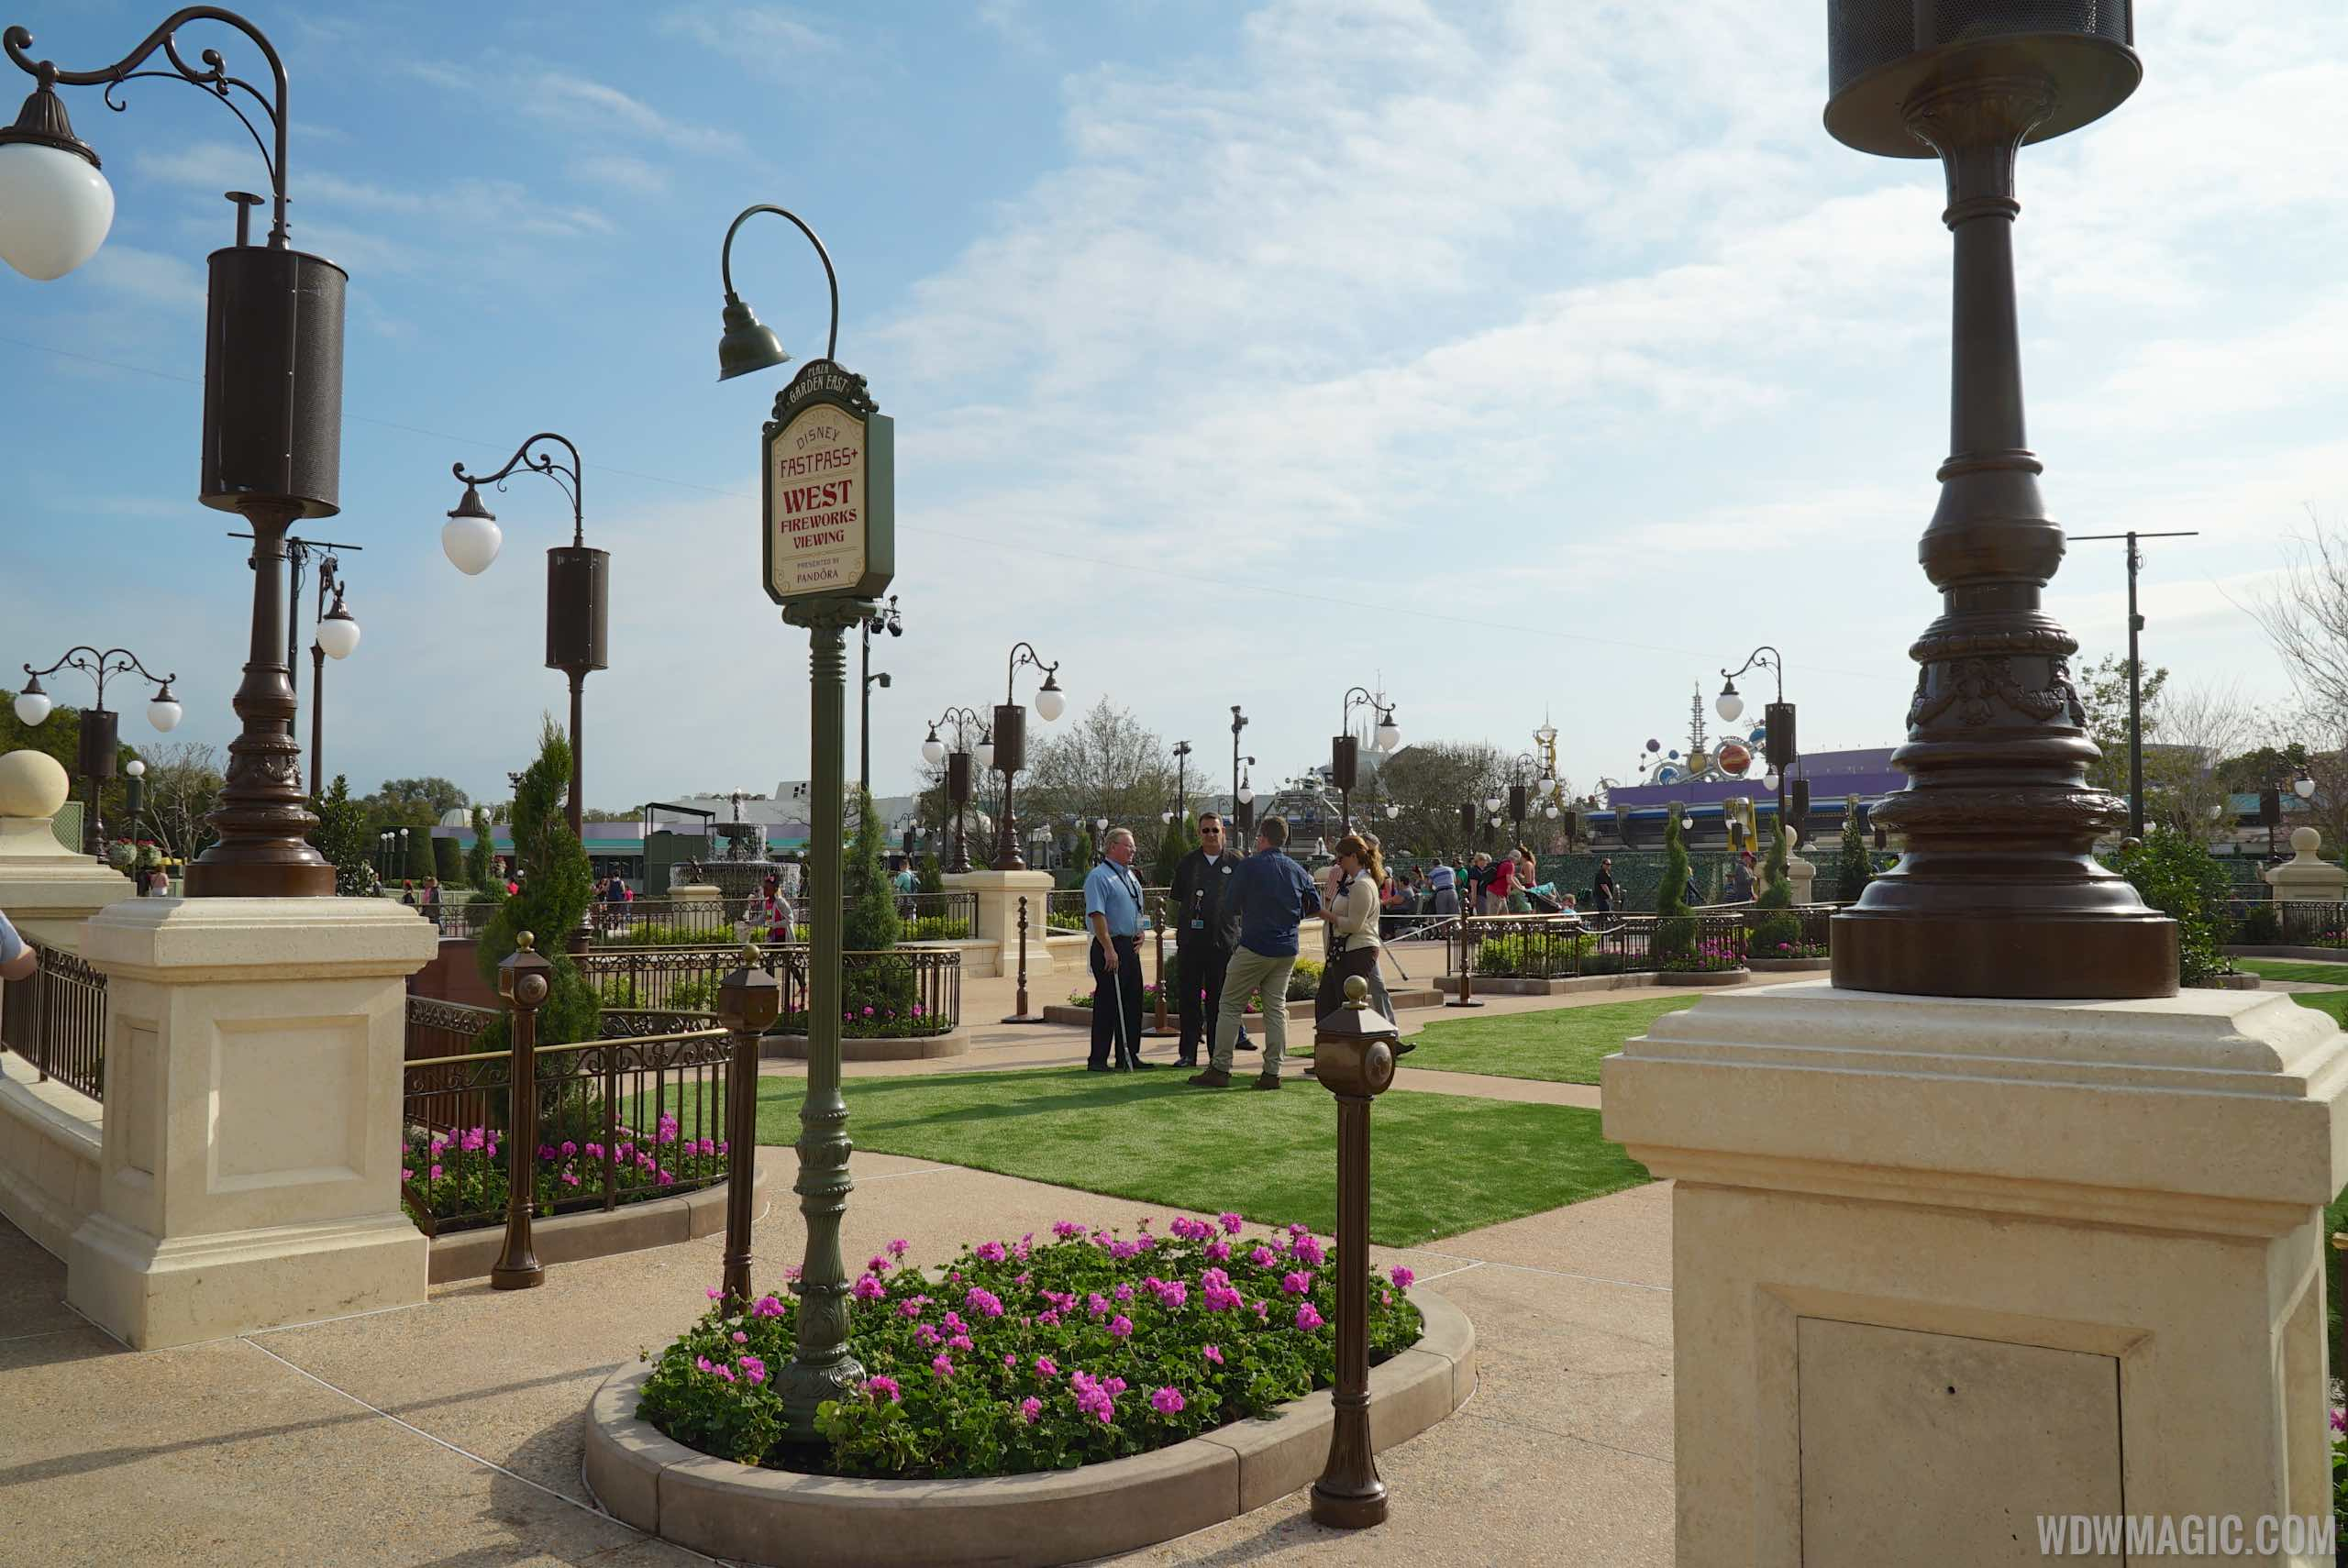 Original FastPass+ viewing area in the Plaza Gardens